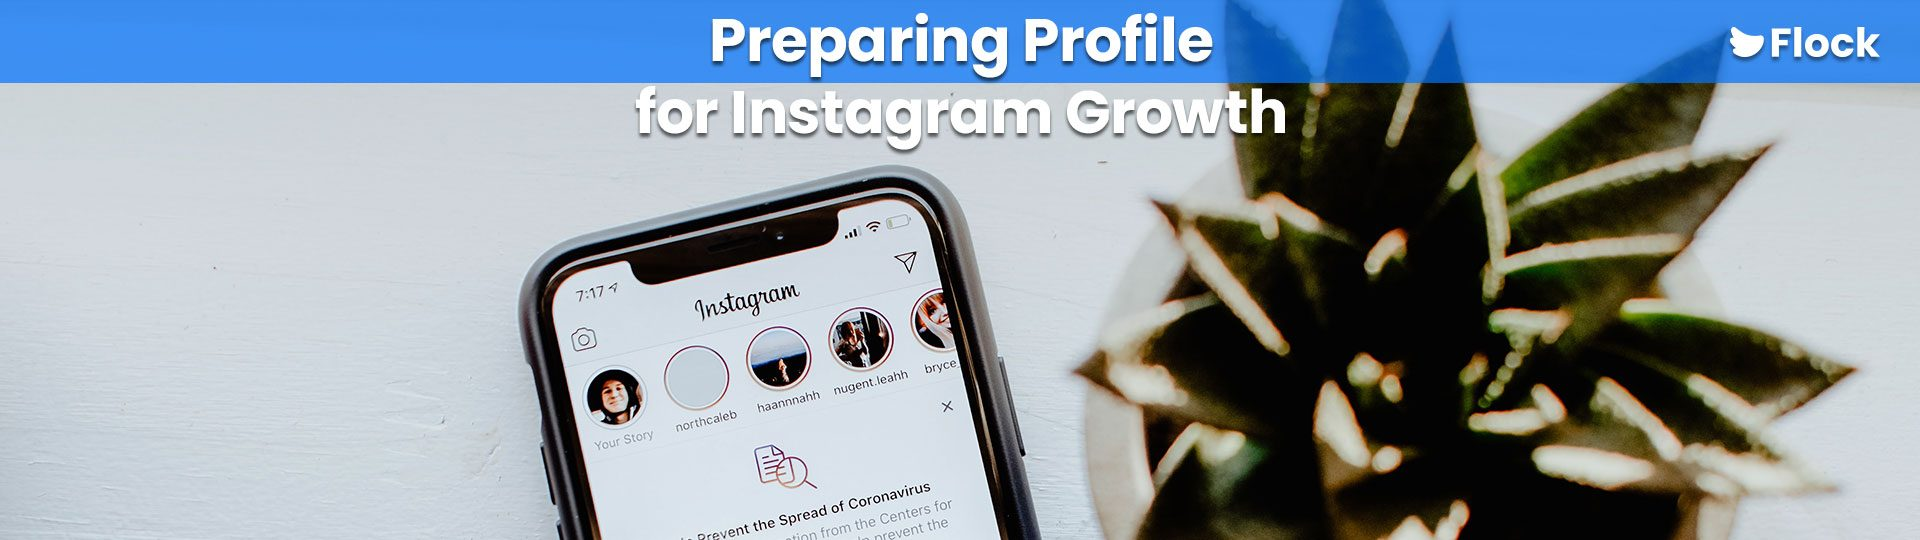 Prepare Your Profile For Instagram Growth